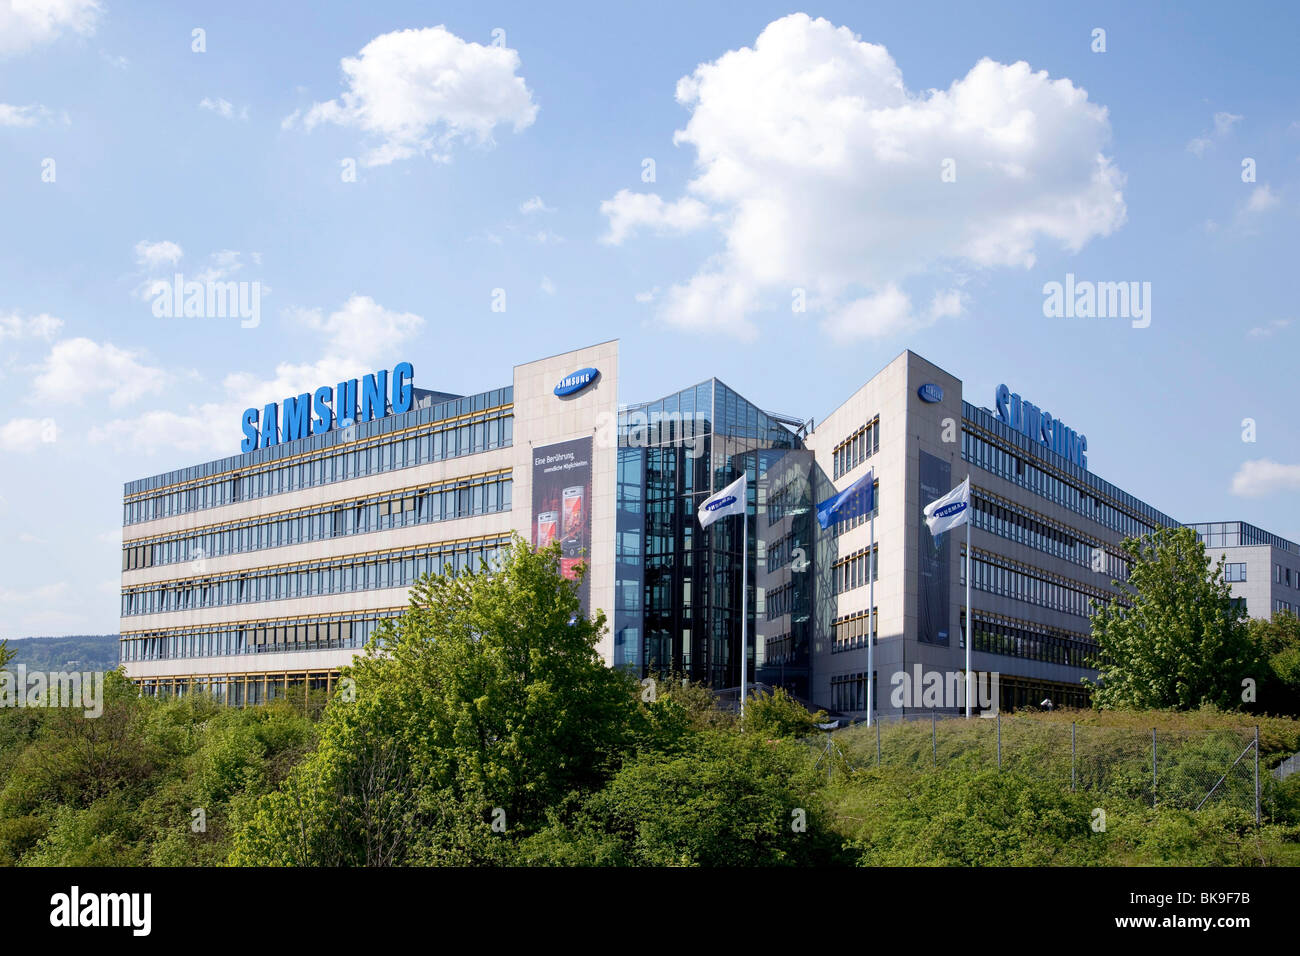 Samsung Electronics GmbH company headquarters in Germany Schwalbach, Hesse, Germany, Europe - Stock Image